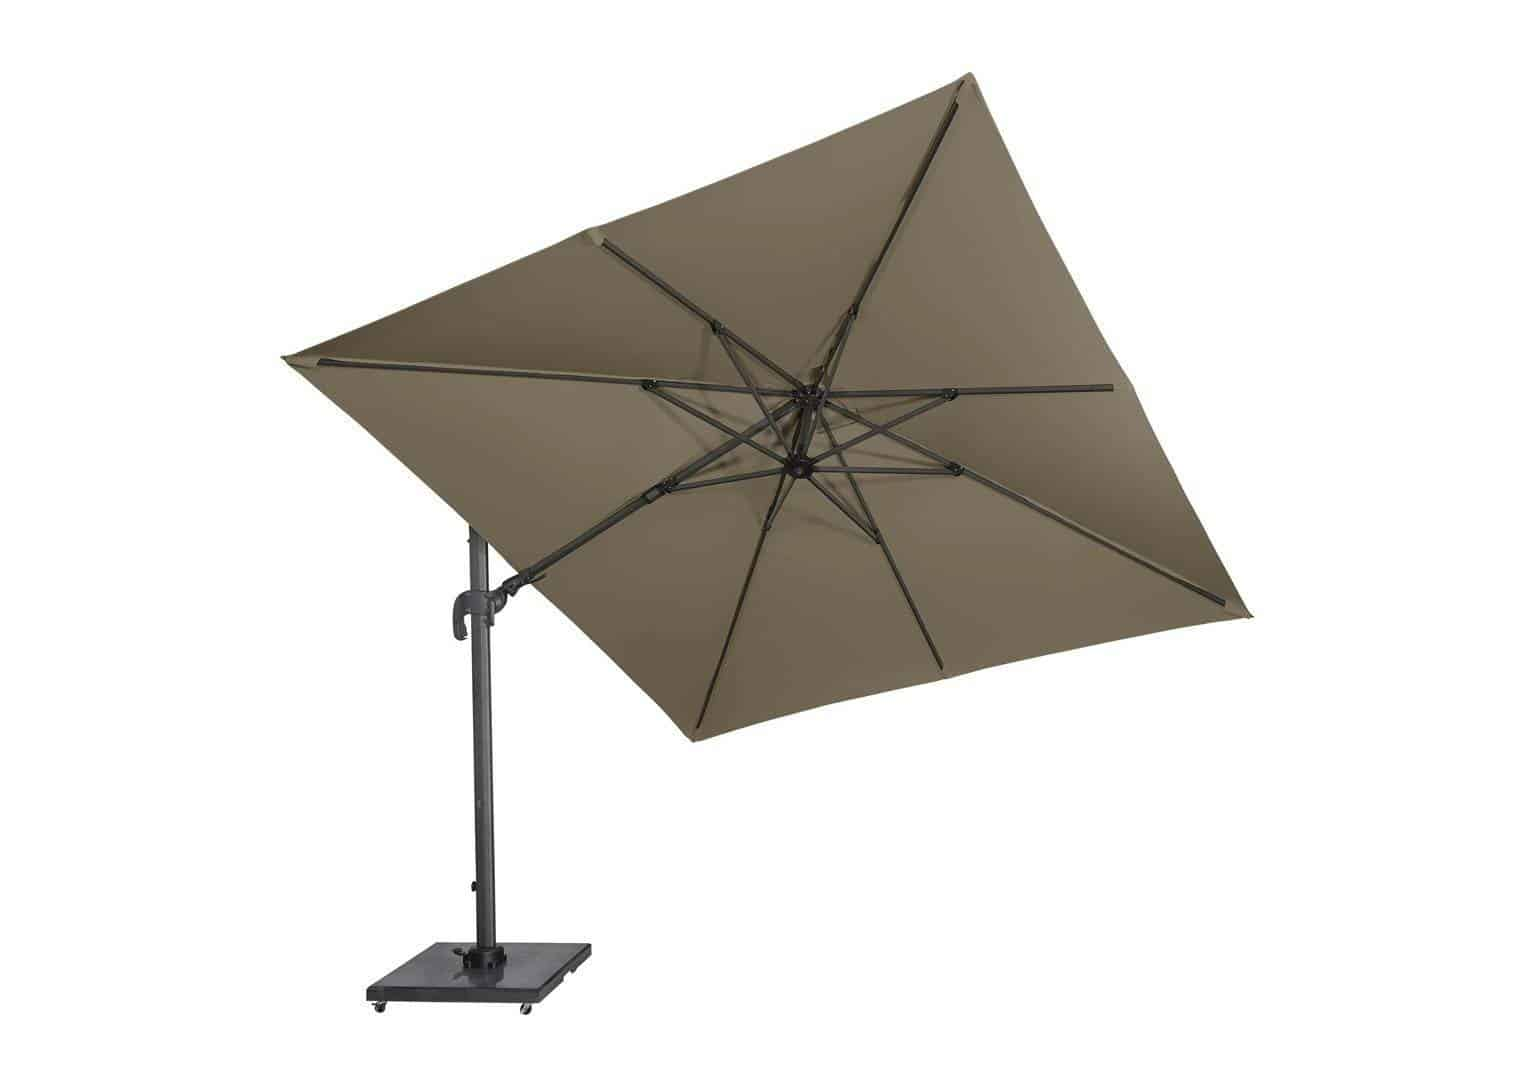 Parasol ogrodowy FALCON T2 2,7 m x 2,7 m taupe 7093E 313